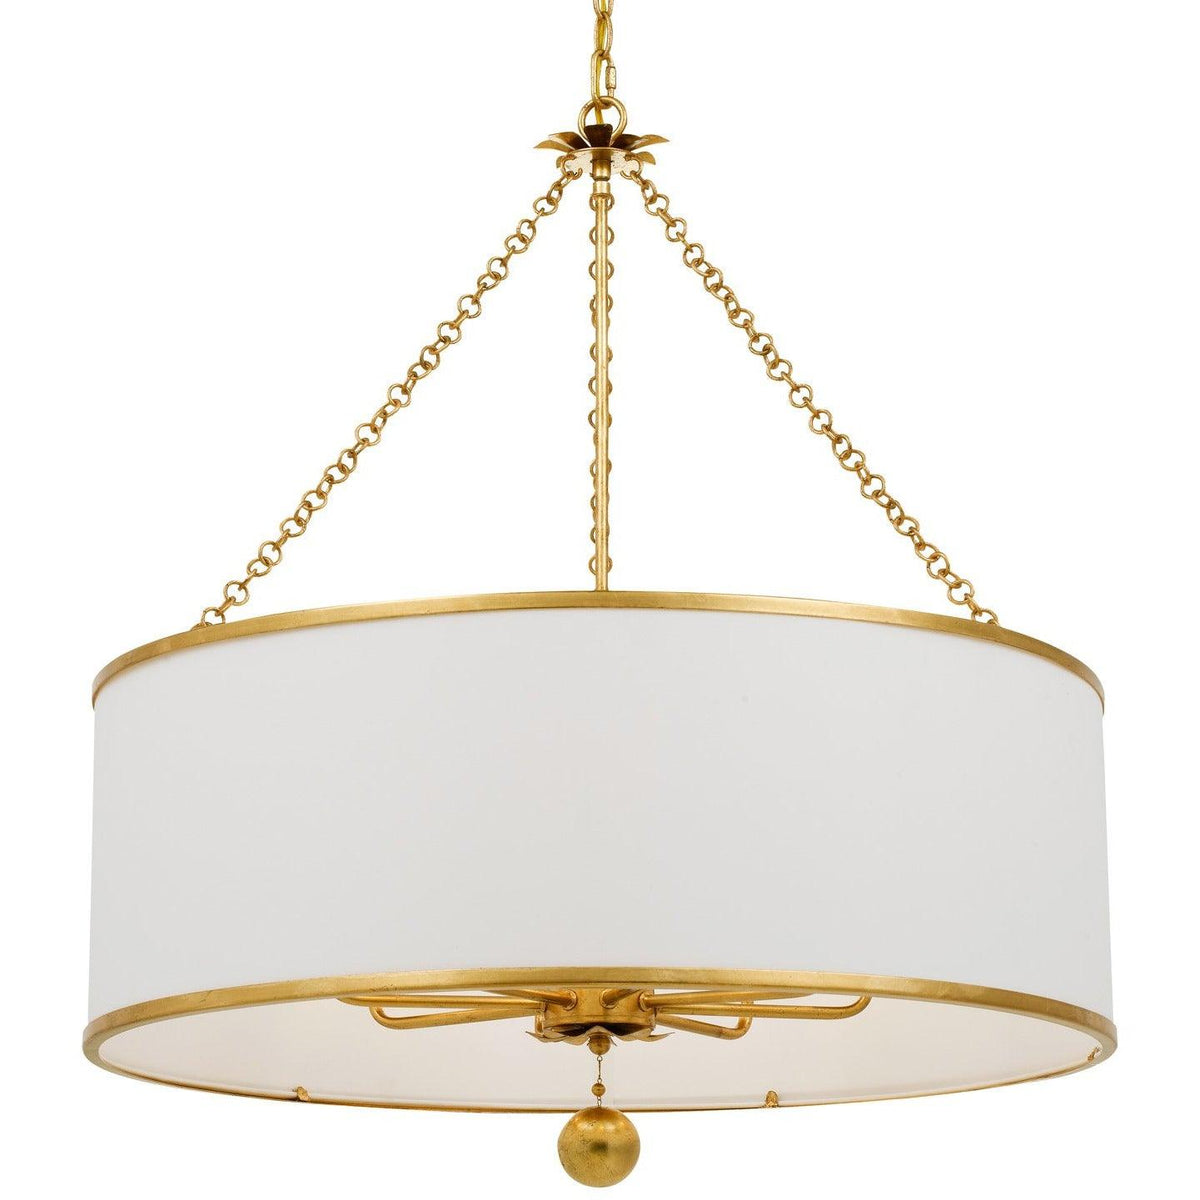 Crystorama - 515-GA - Eight Light Chandelier - Broche - Antique Gold